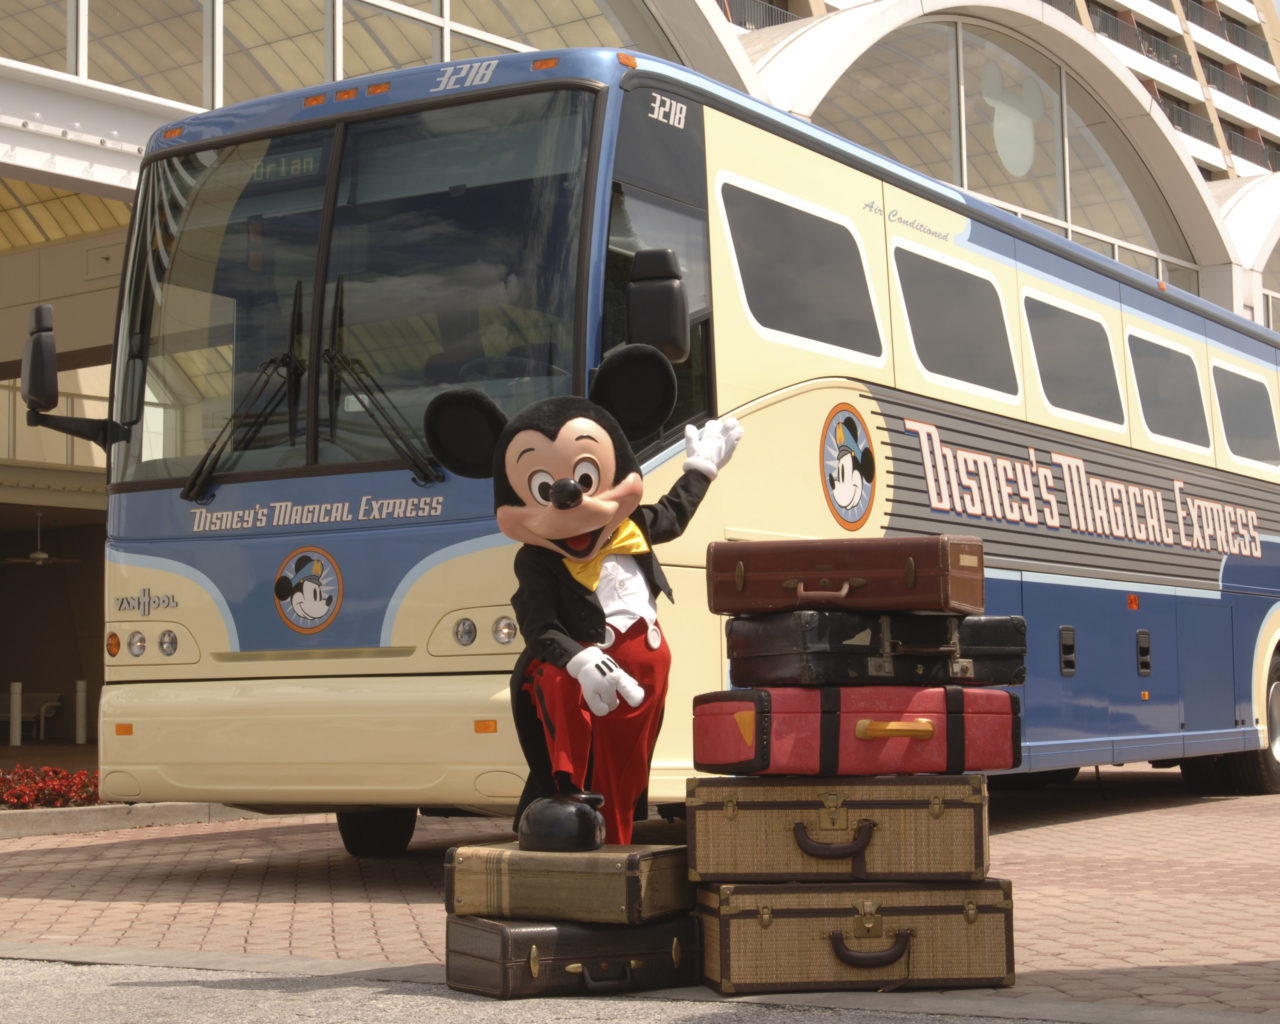 Magical Express bus at Disney World.